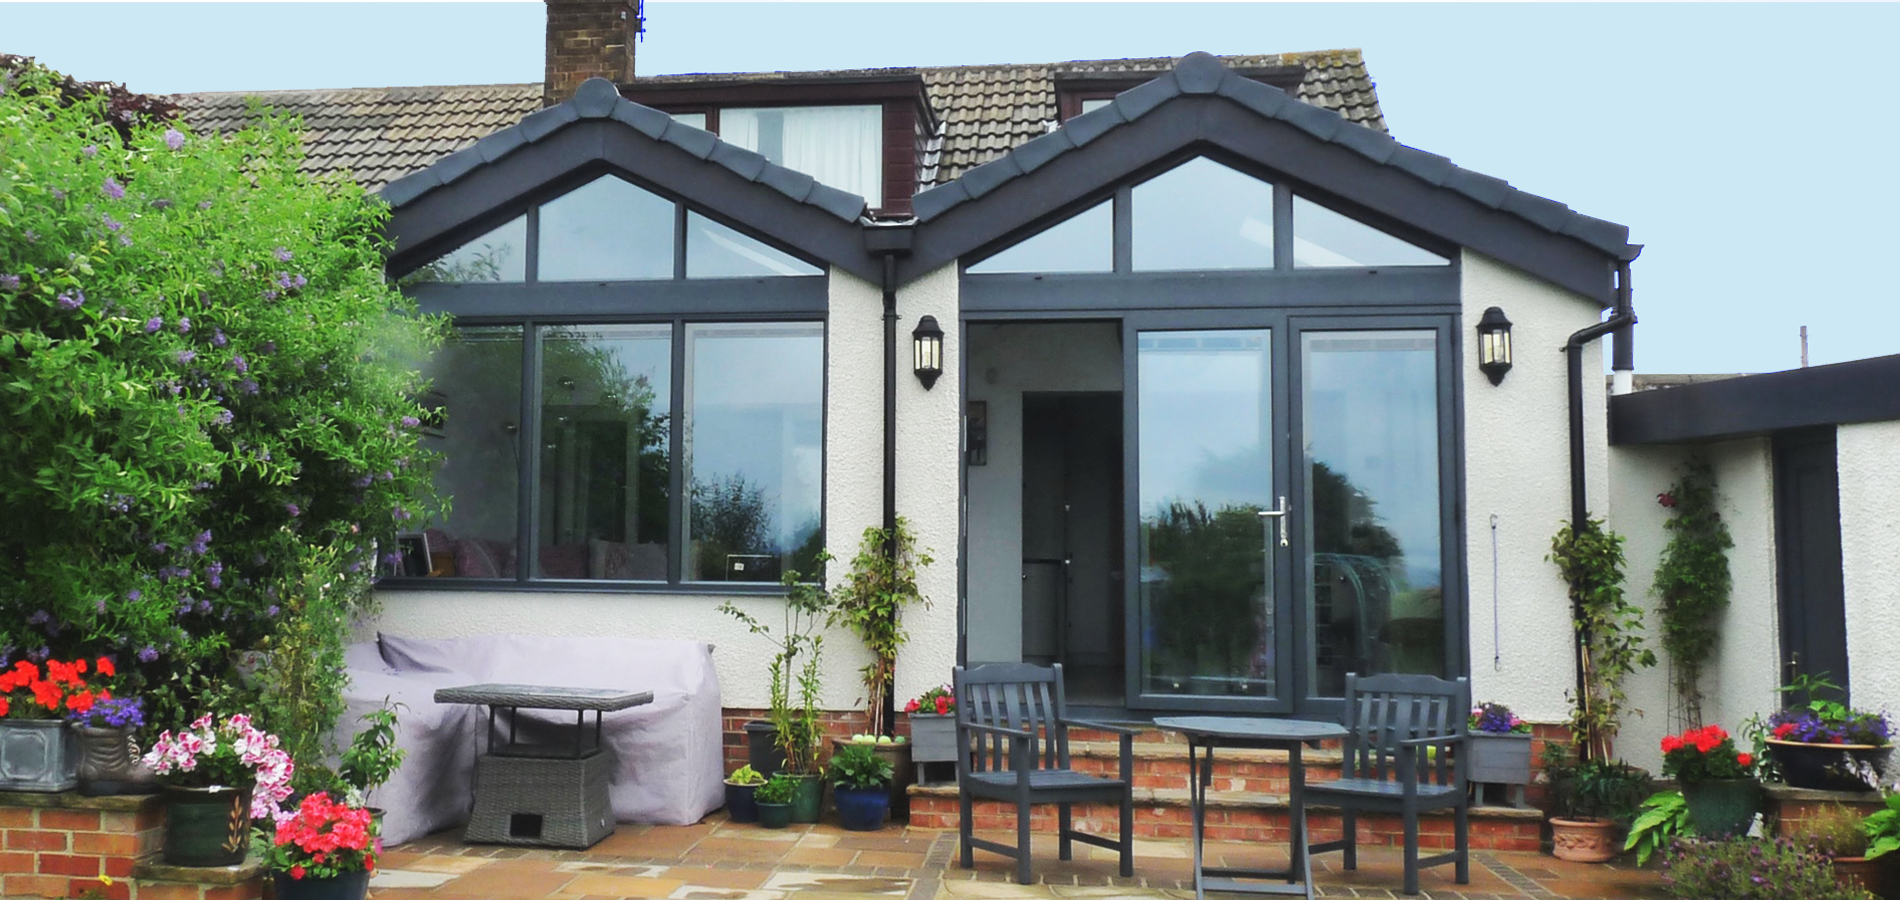 Home Extensions in Yorkshire